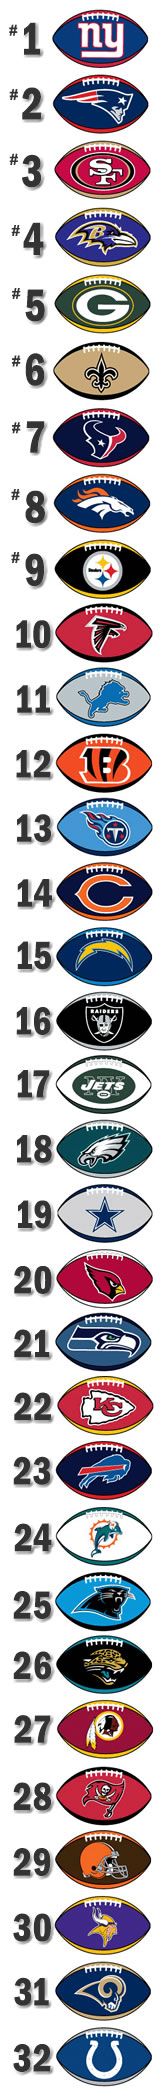 Final NFL Team Rankings